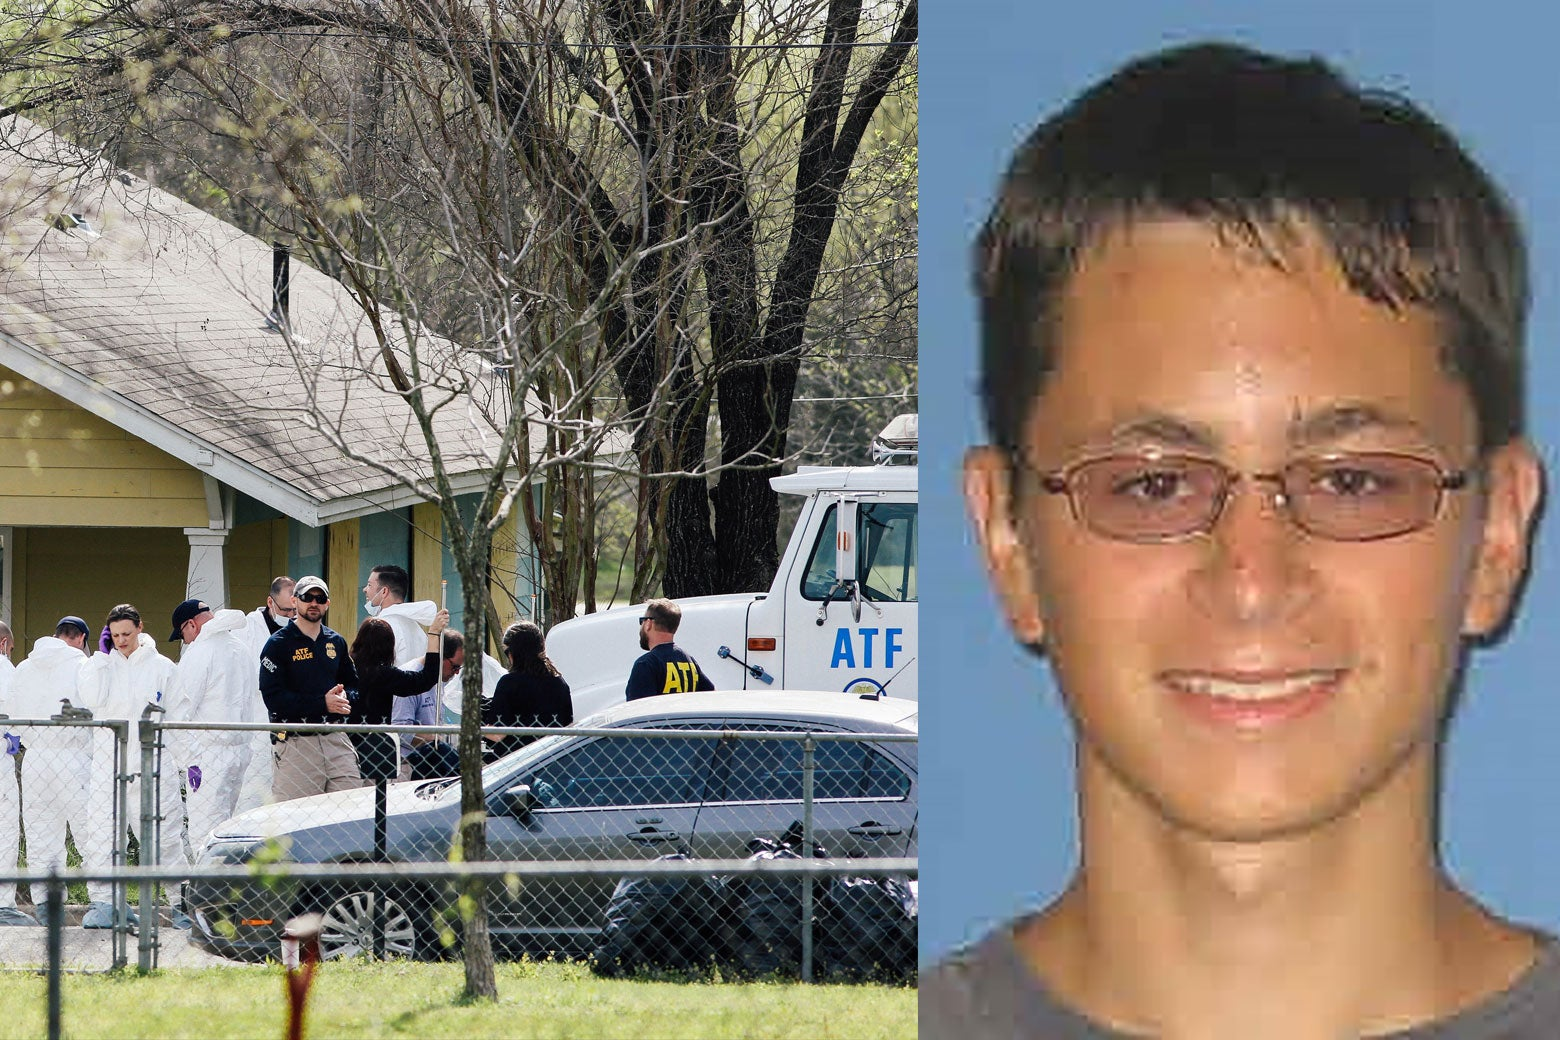 Side-by-side: Left: Law enforcement personnel investigate the home where Austin serial bomber Mark Anthony Conditt lived in Pflugerville, Texas. Right: Mark Anthony Conditt is seen in this undated handout photo released by Austin Community College.